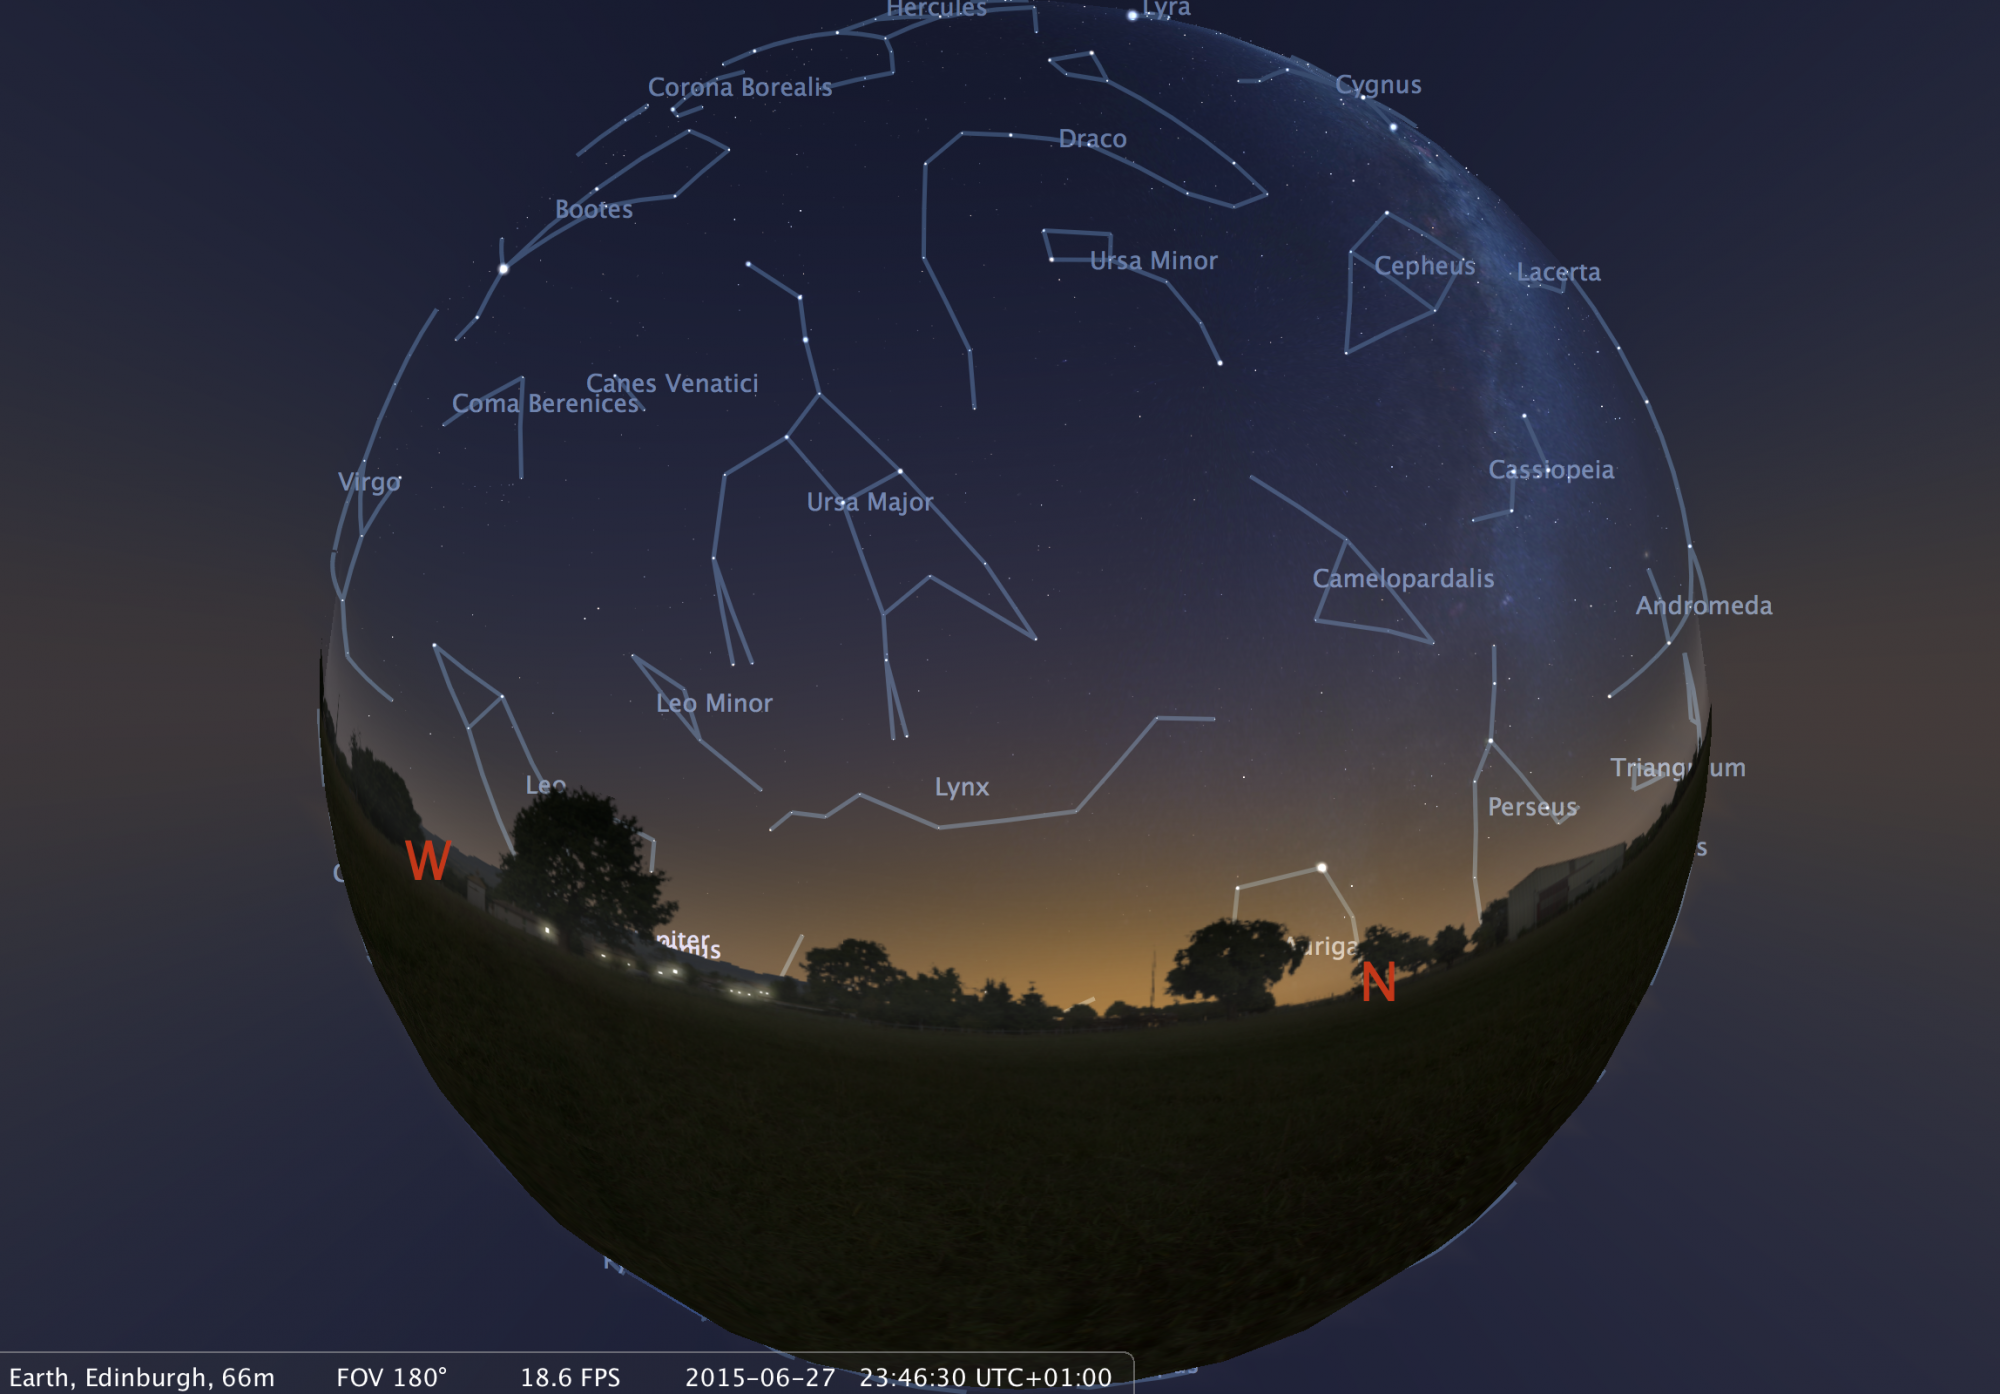 An image of the sky above Edinburgh made using Stellarium planetarium software. Users of the new headset will see a similar image, but will be totally immersed in the view. Credit: A. Lawrence.